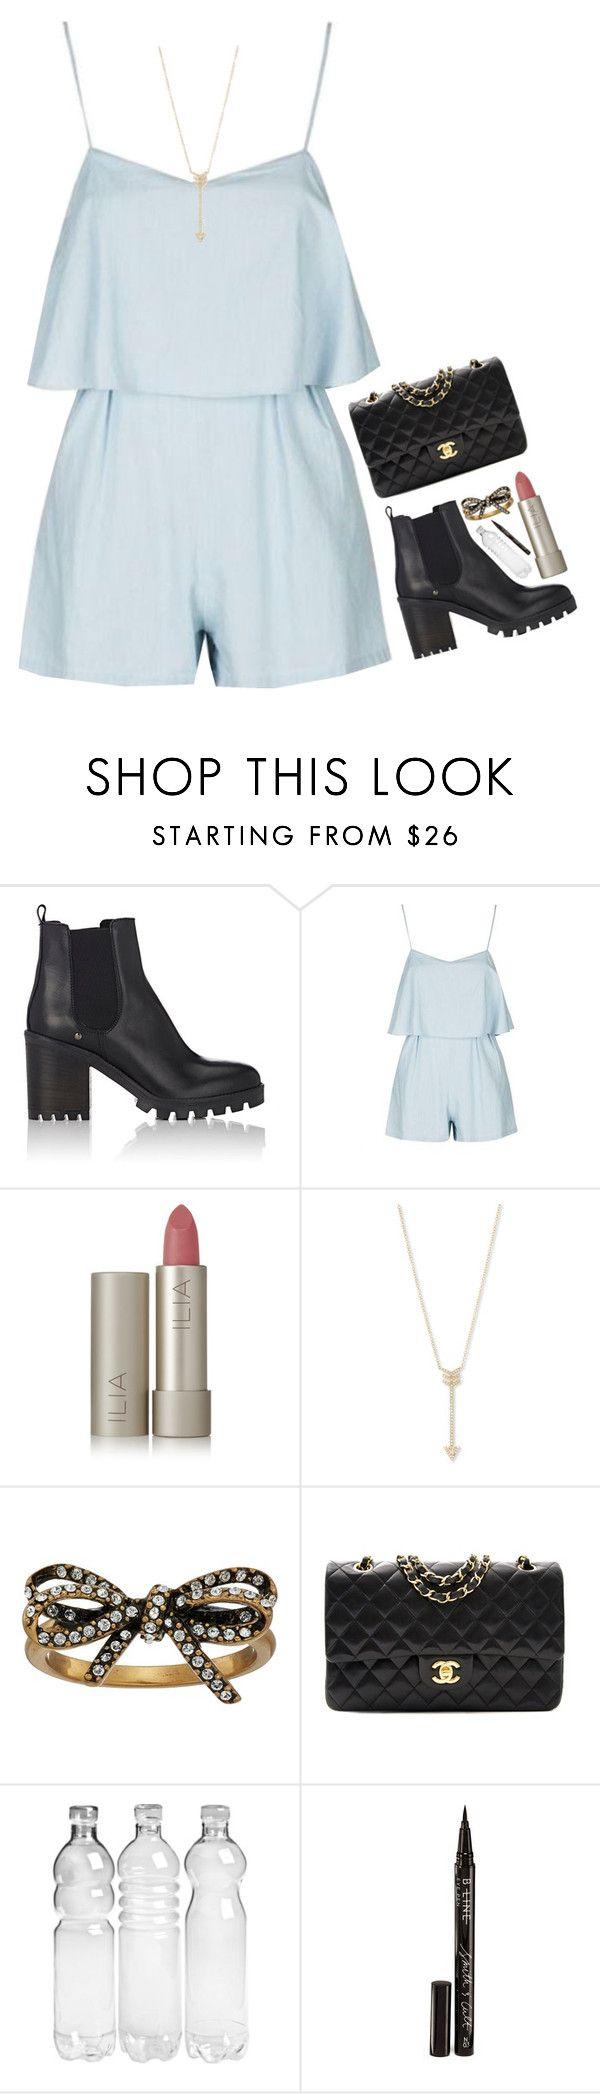 """""""Sassy In Blue"""" by mel2016 ❤ liked on Polyvore featuring Barneys New York, Topshop, Ilia, EF Collection, Marc Jacobs, Chanel and Smith & Cult"""